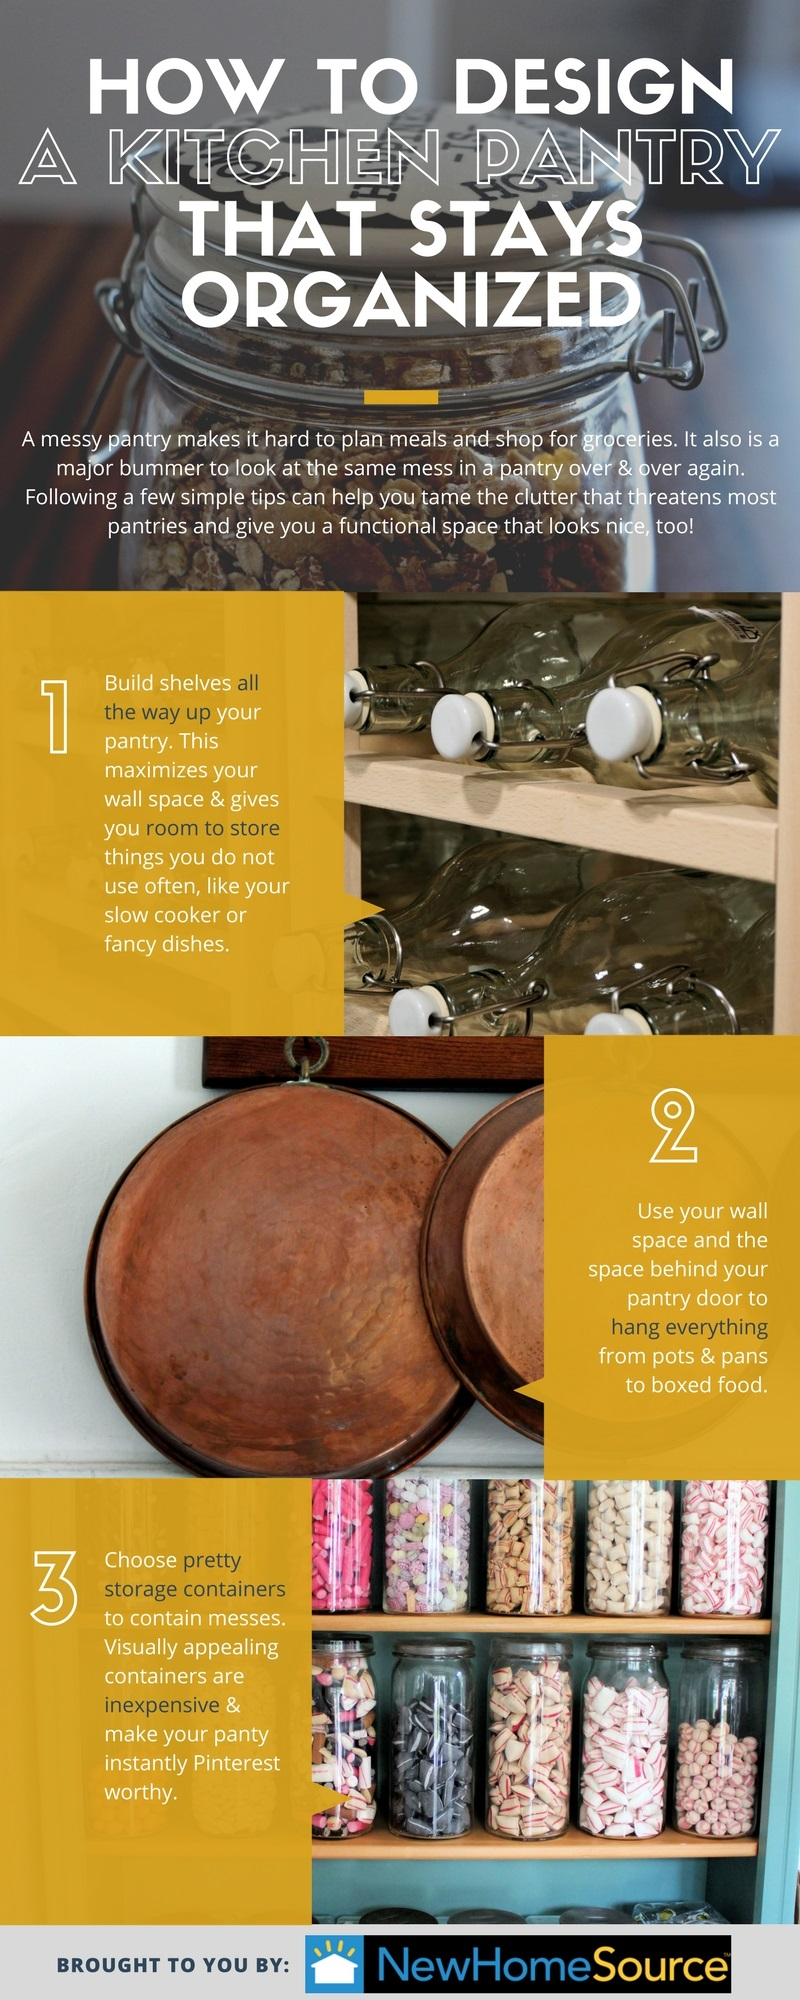 Tips to Design an Organized Kitchen Pantry infographic